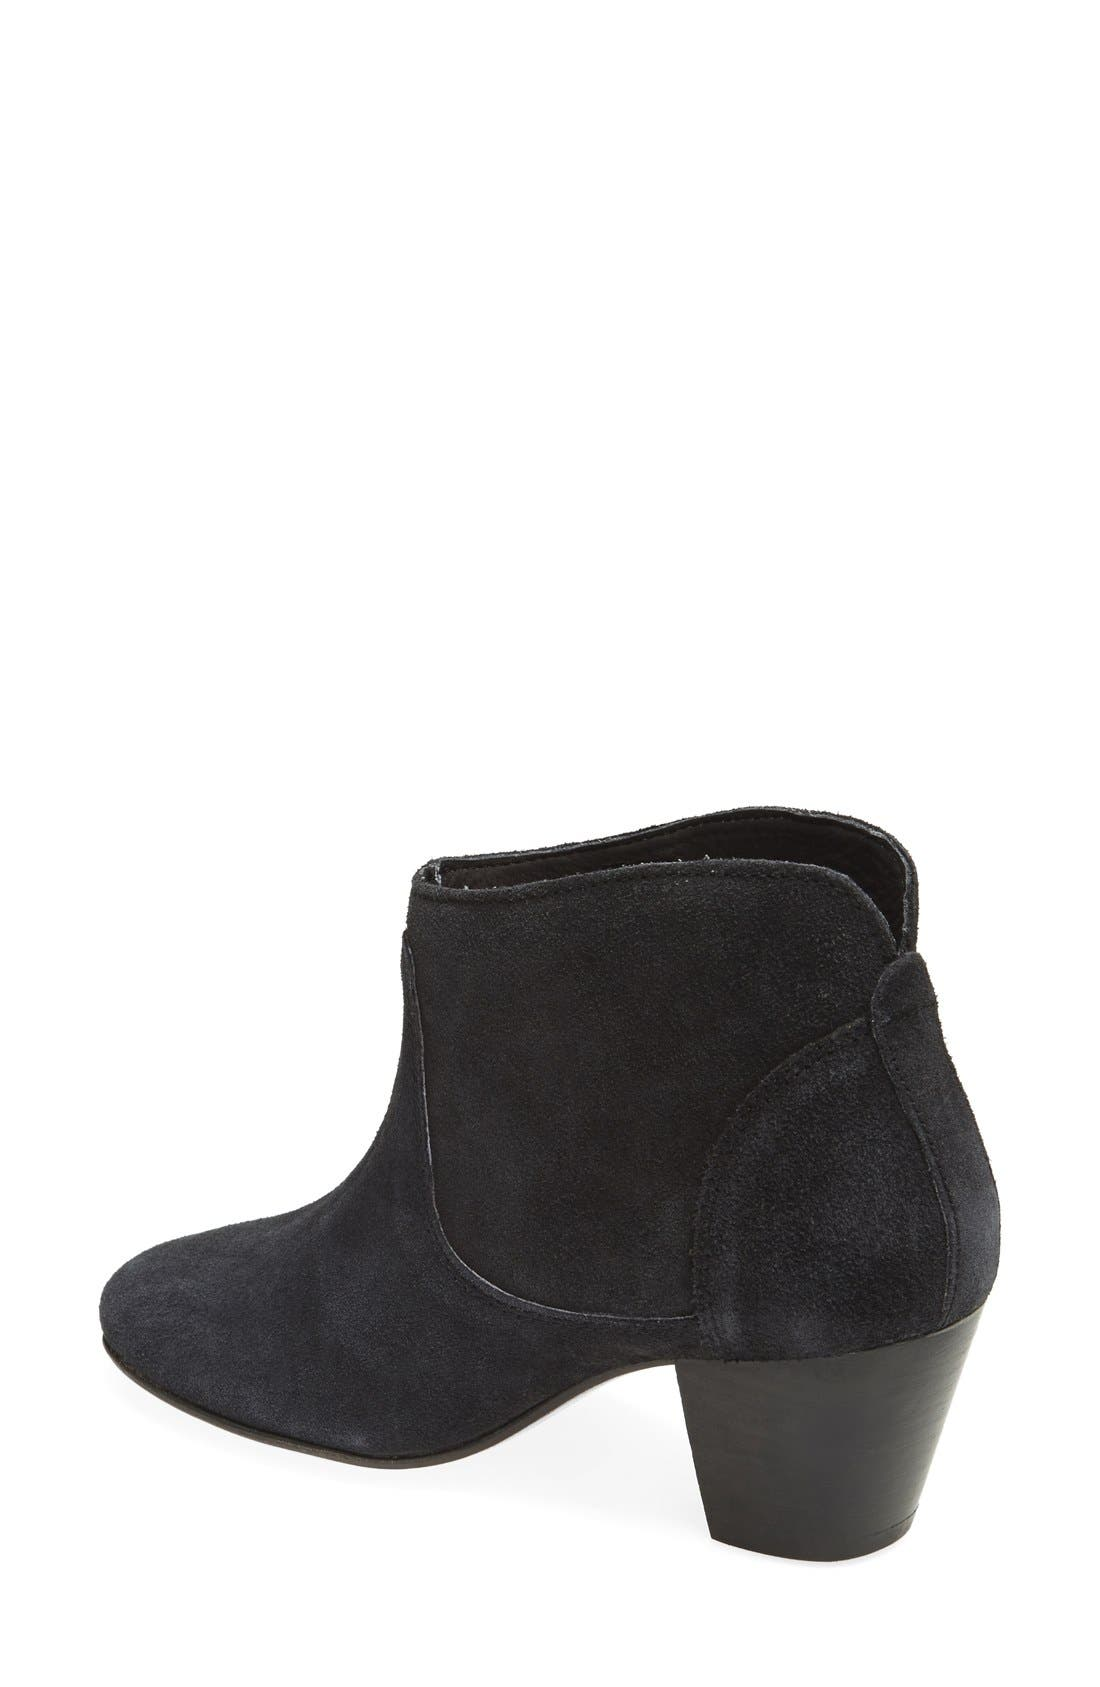 H BY HUDSON, 'Kiver' Suede Bootie, Alternate thumbnail 3, color, 001